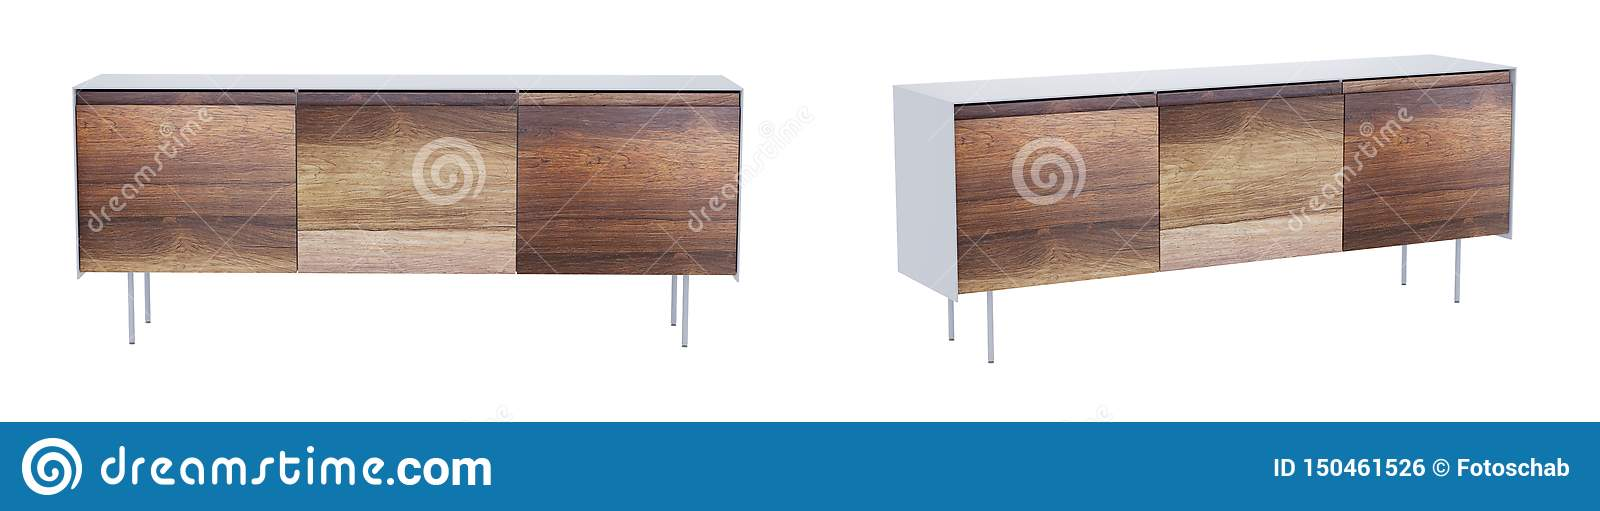 Vintage sideboard isolated on white with clipping path. 3D render.